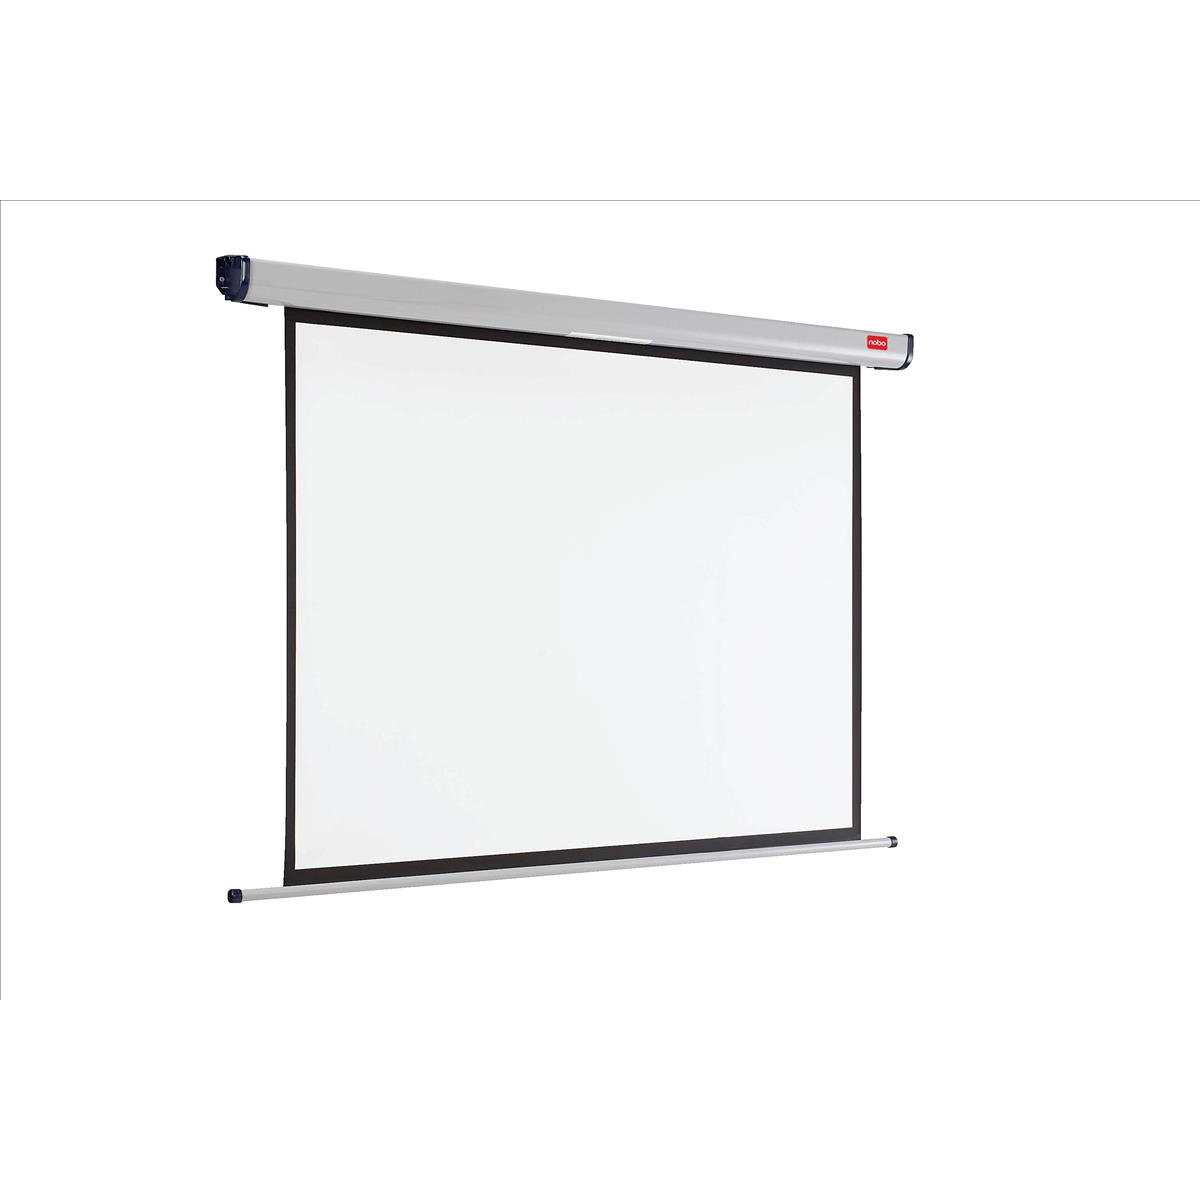 Image for Nobo Wall Widescreen Projection Screen W2400xH1600 Ref 1902394W